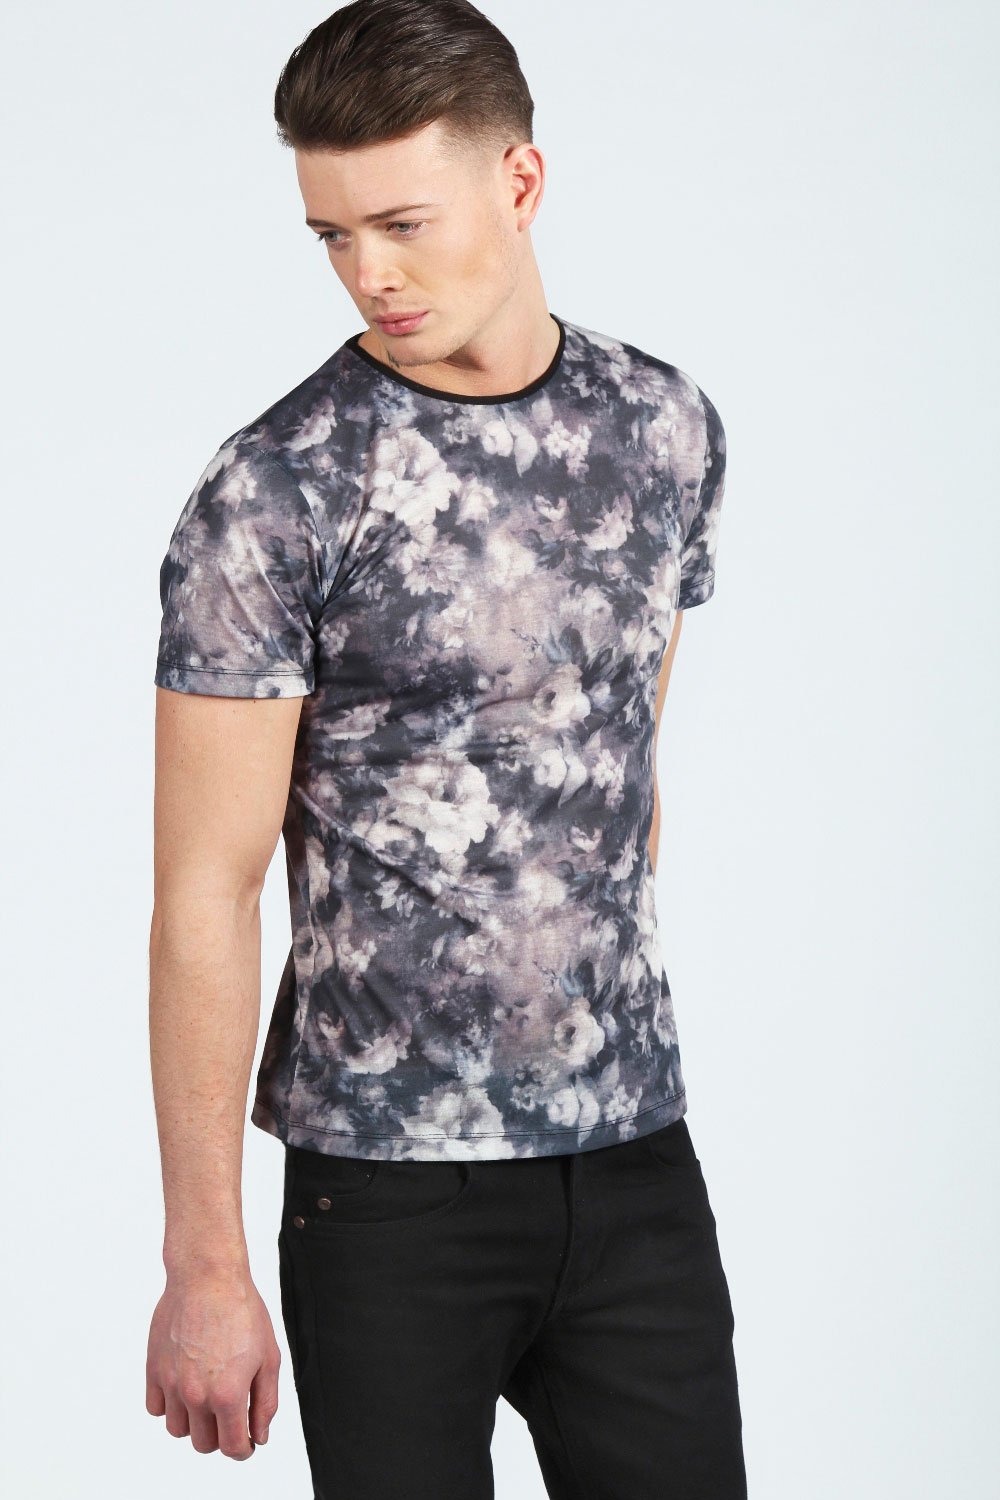 Black and white floral t shirt